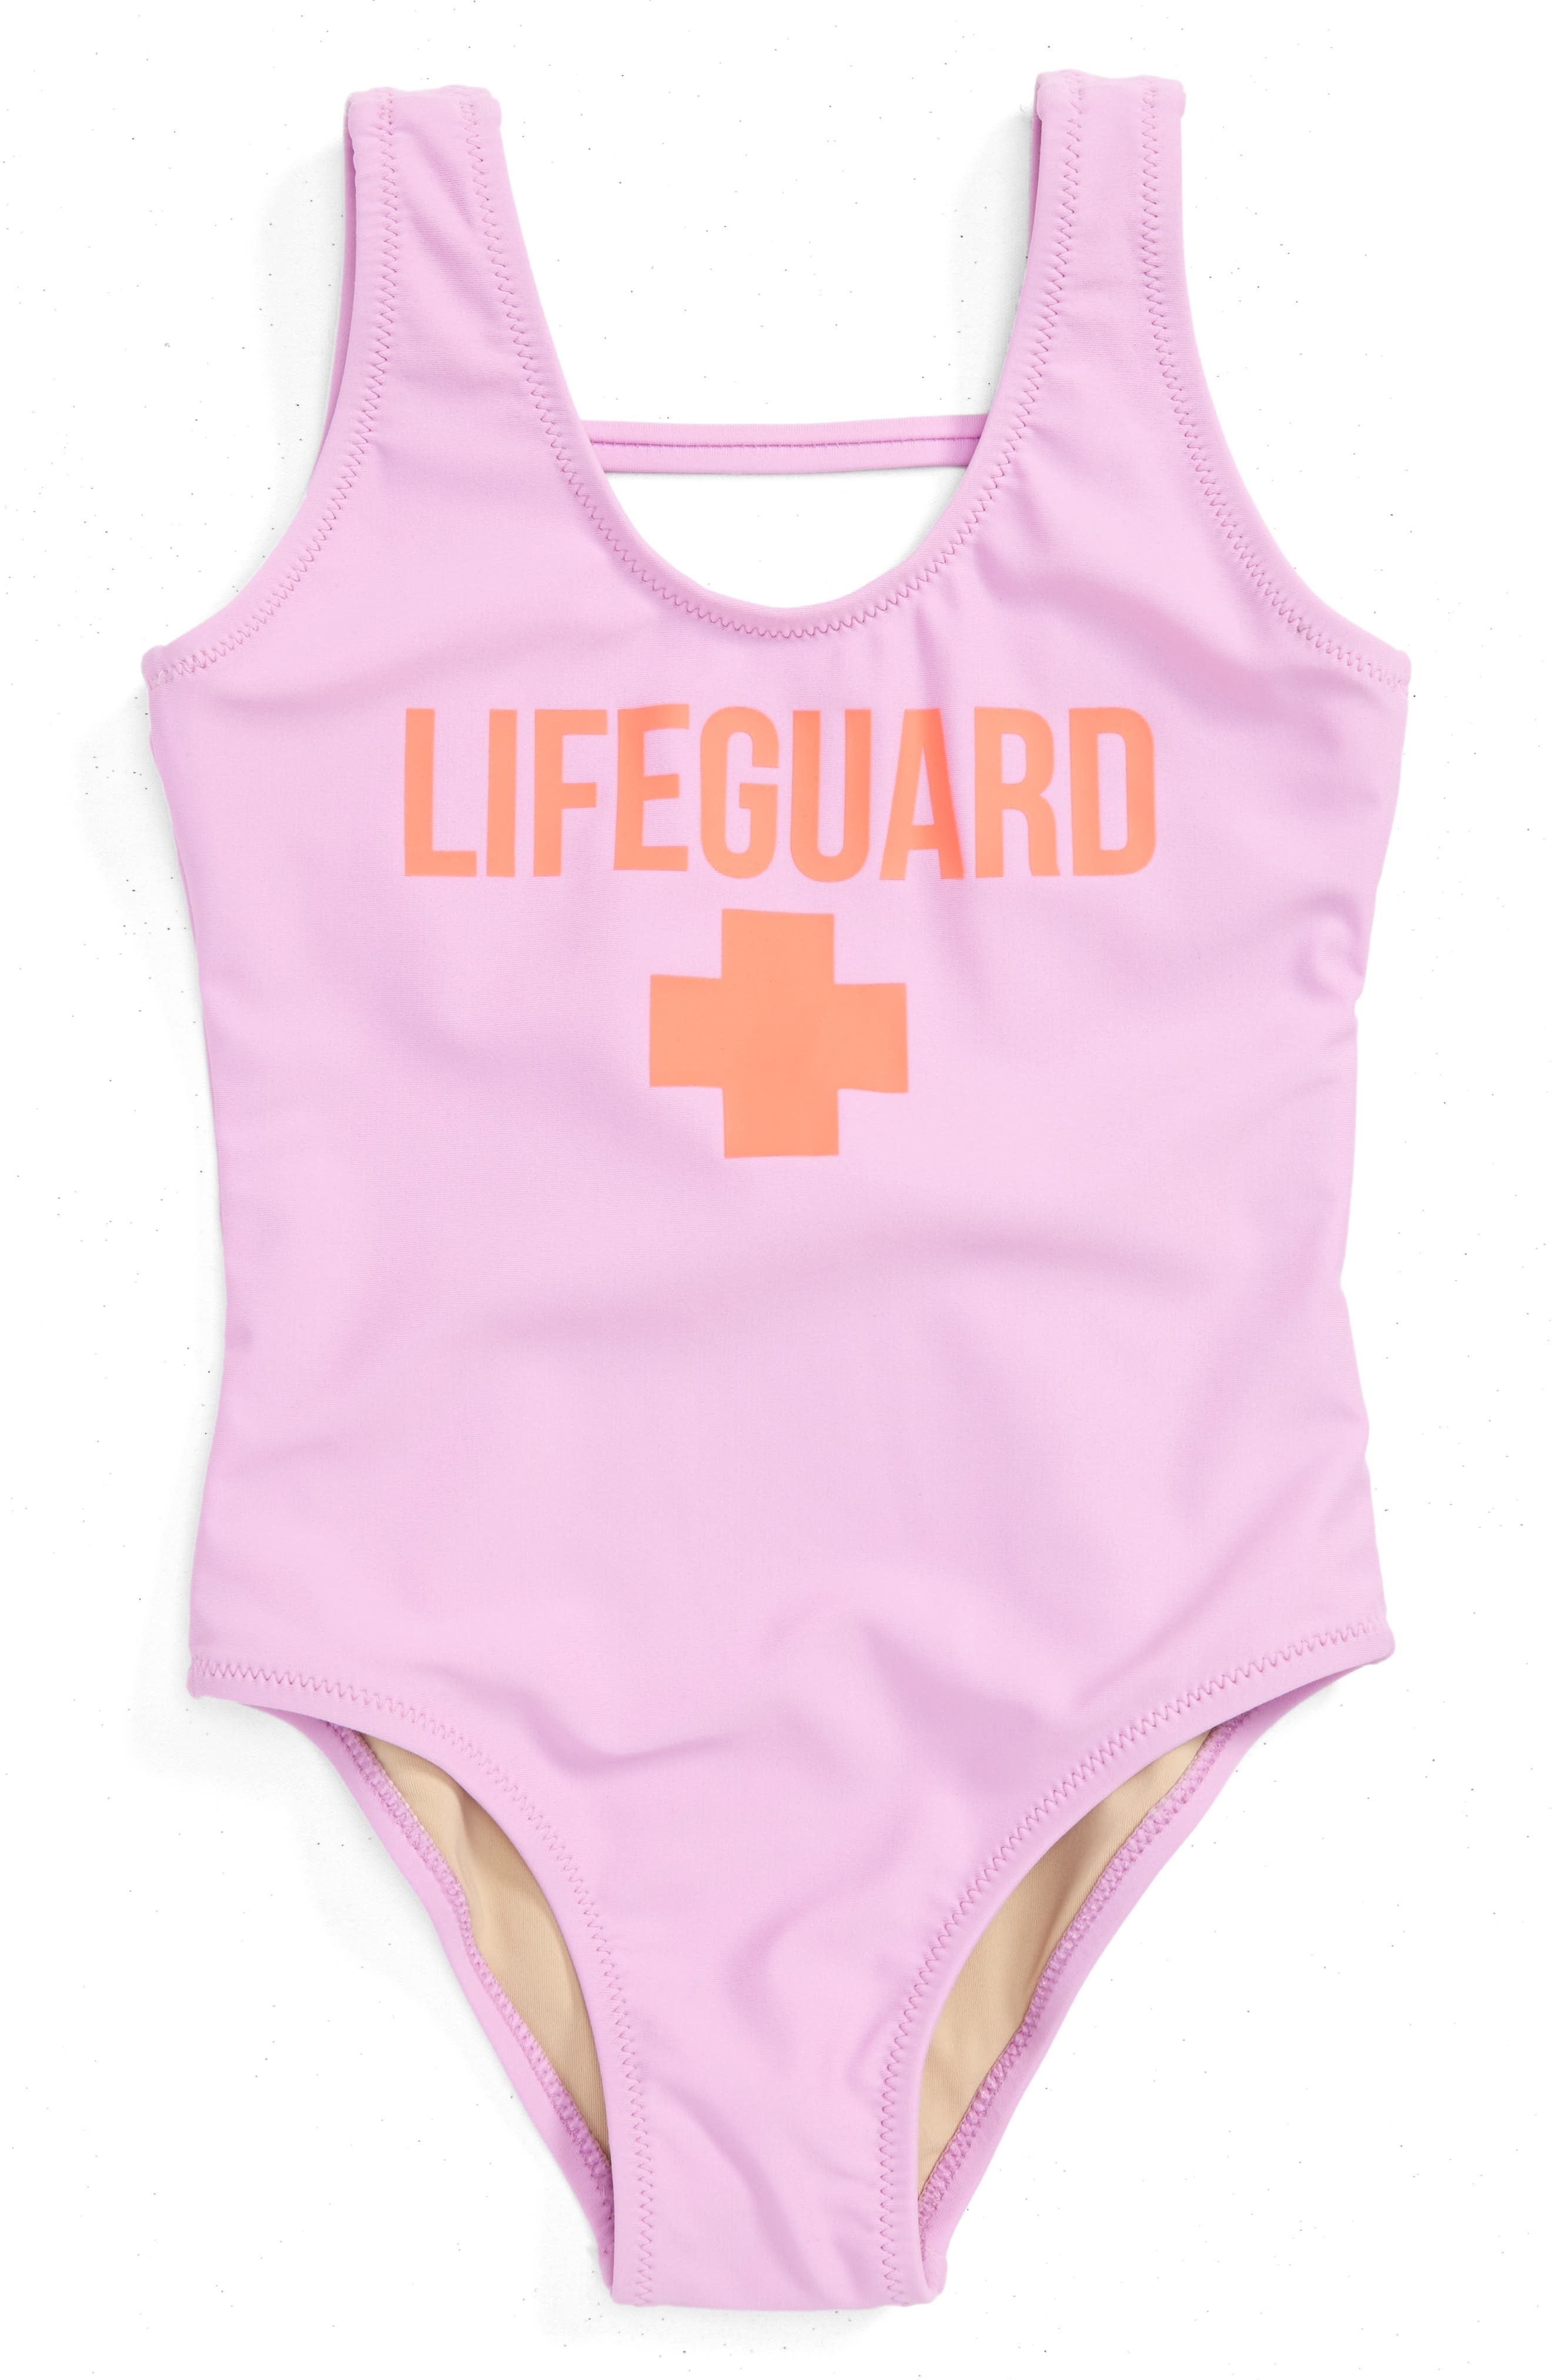 Alternate Image 1 Selected - Shade Critters Lifeguard One-Piece Swimsuit (Toddler Girls & Little Girls)